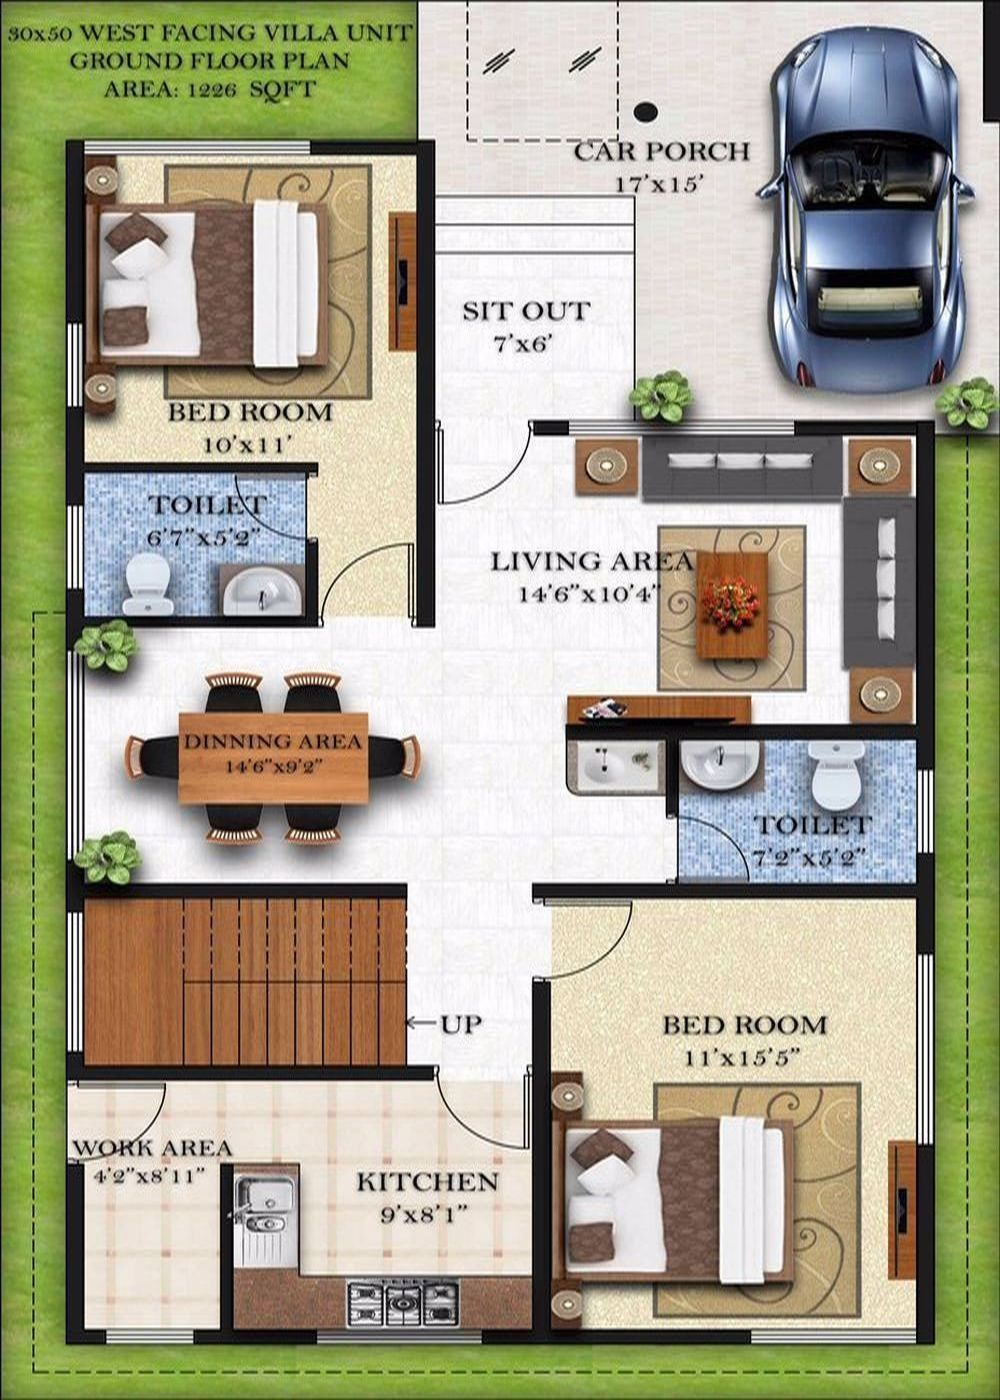 House plan  lovely plans east facing design of awesome alijdeveloper blog floor plot size also best images in rh pinterest